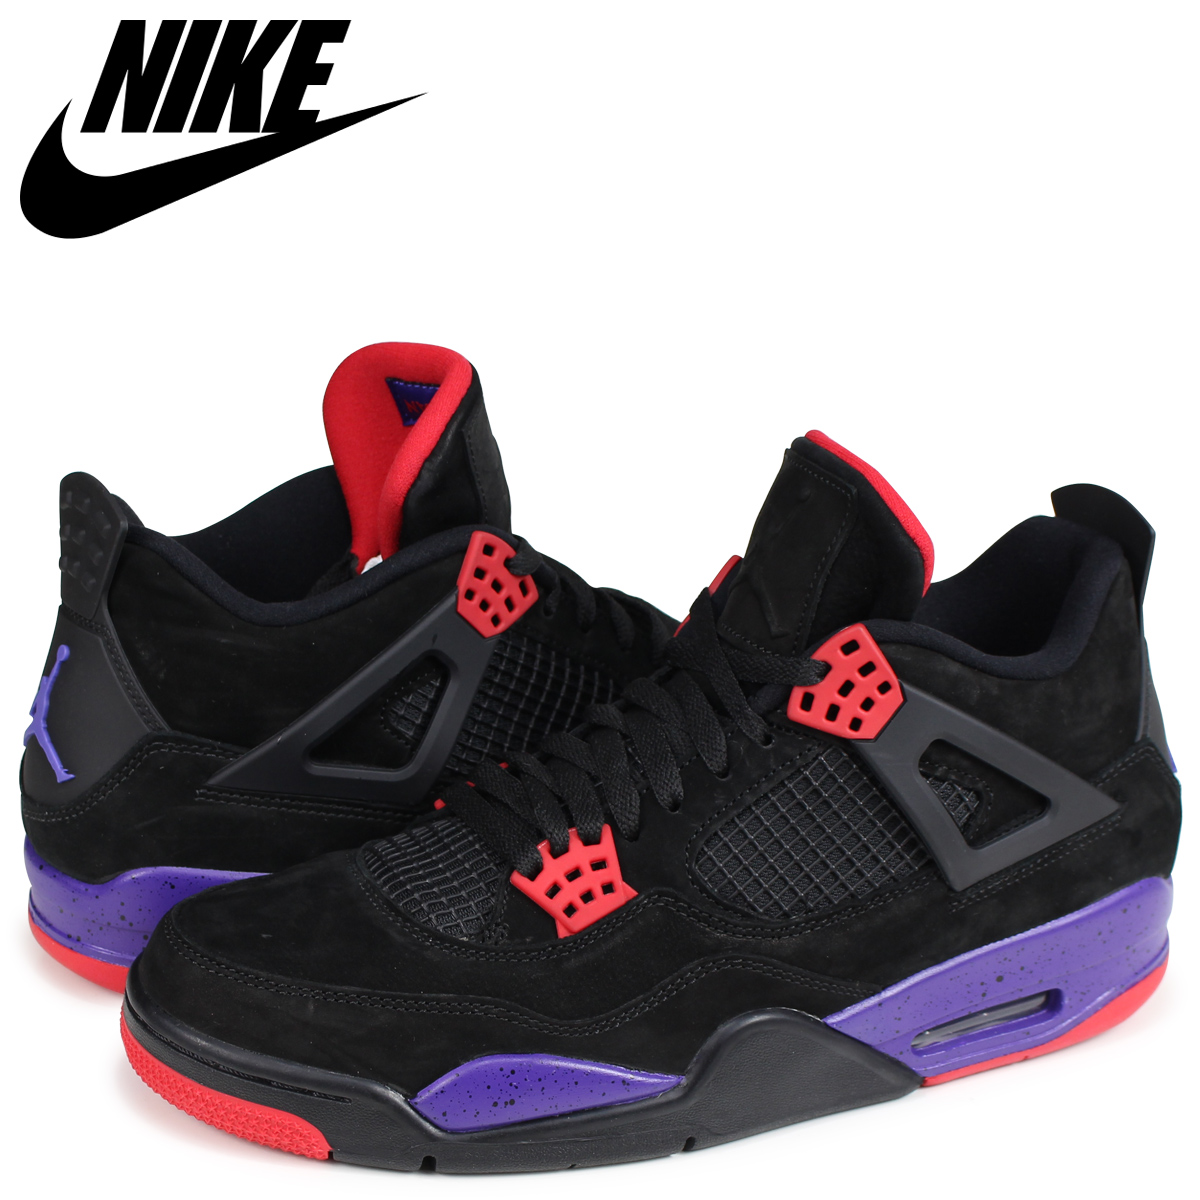 NIKE Nike Air Jordan 4 nostalgic sneakers men AIR JORDAN 4 RETRO NRG  RAPTORS AQ3816-065 black 138c7f2f4